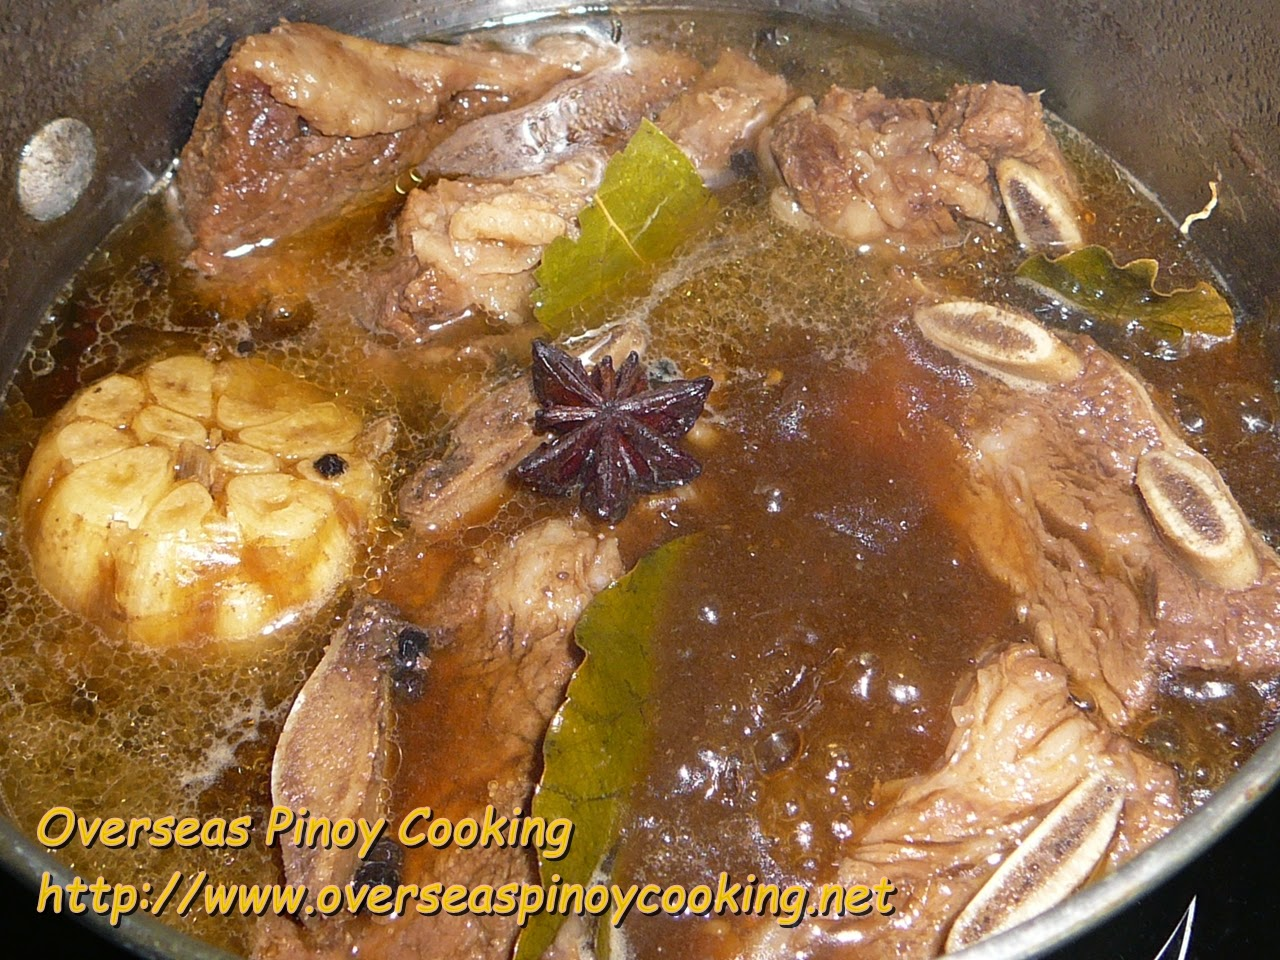 Mango Beer Braised Beef Spare Ribs - Cooking Procedure